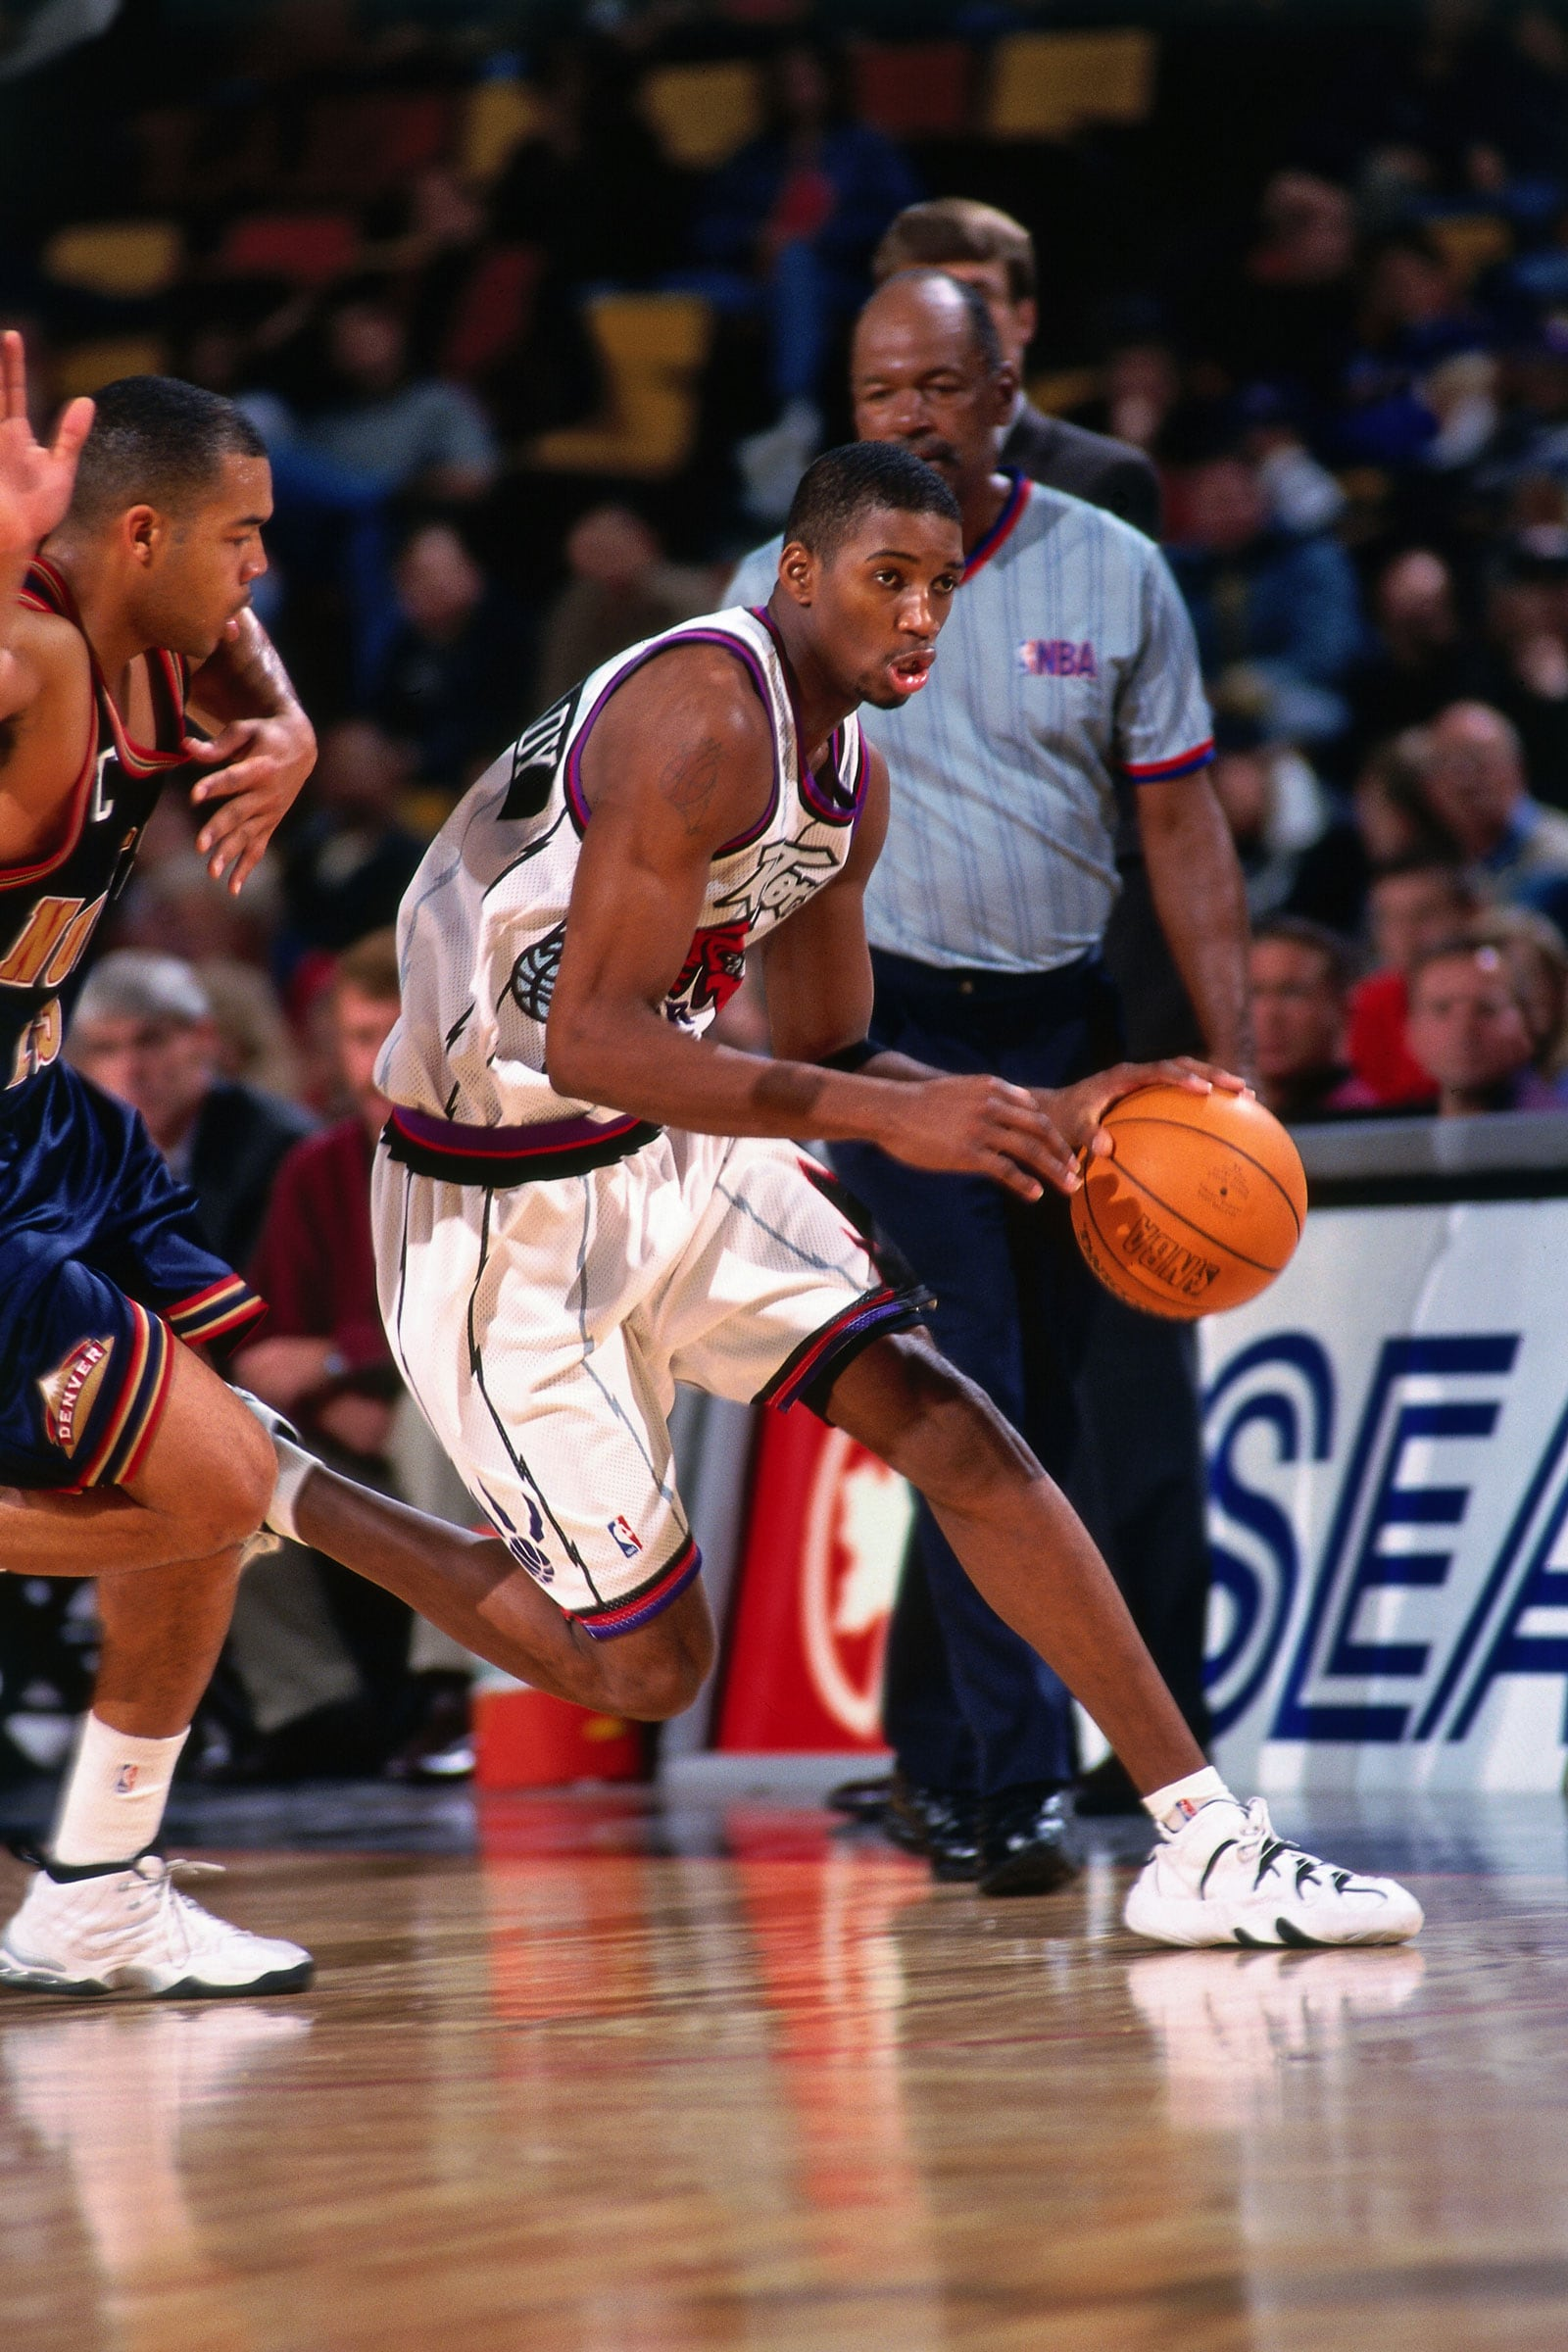 Tracy McGrady #1 of the Toronto Raptors dribbles against the Denver Nuggets on March 19, 1998 at the Skydome in Toronto, Canada.